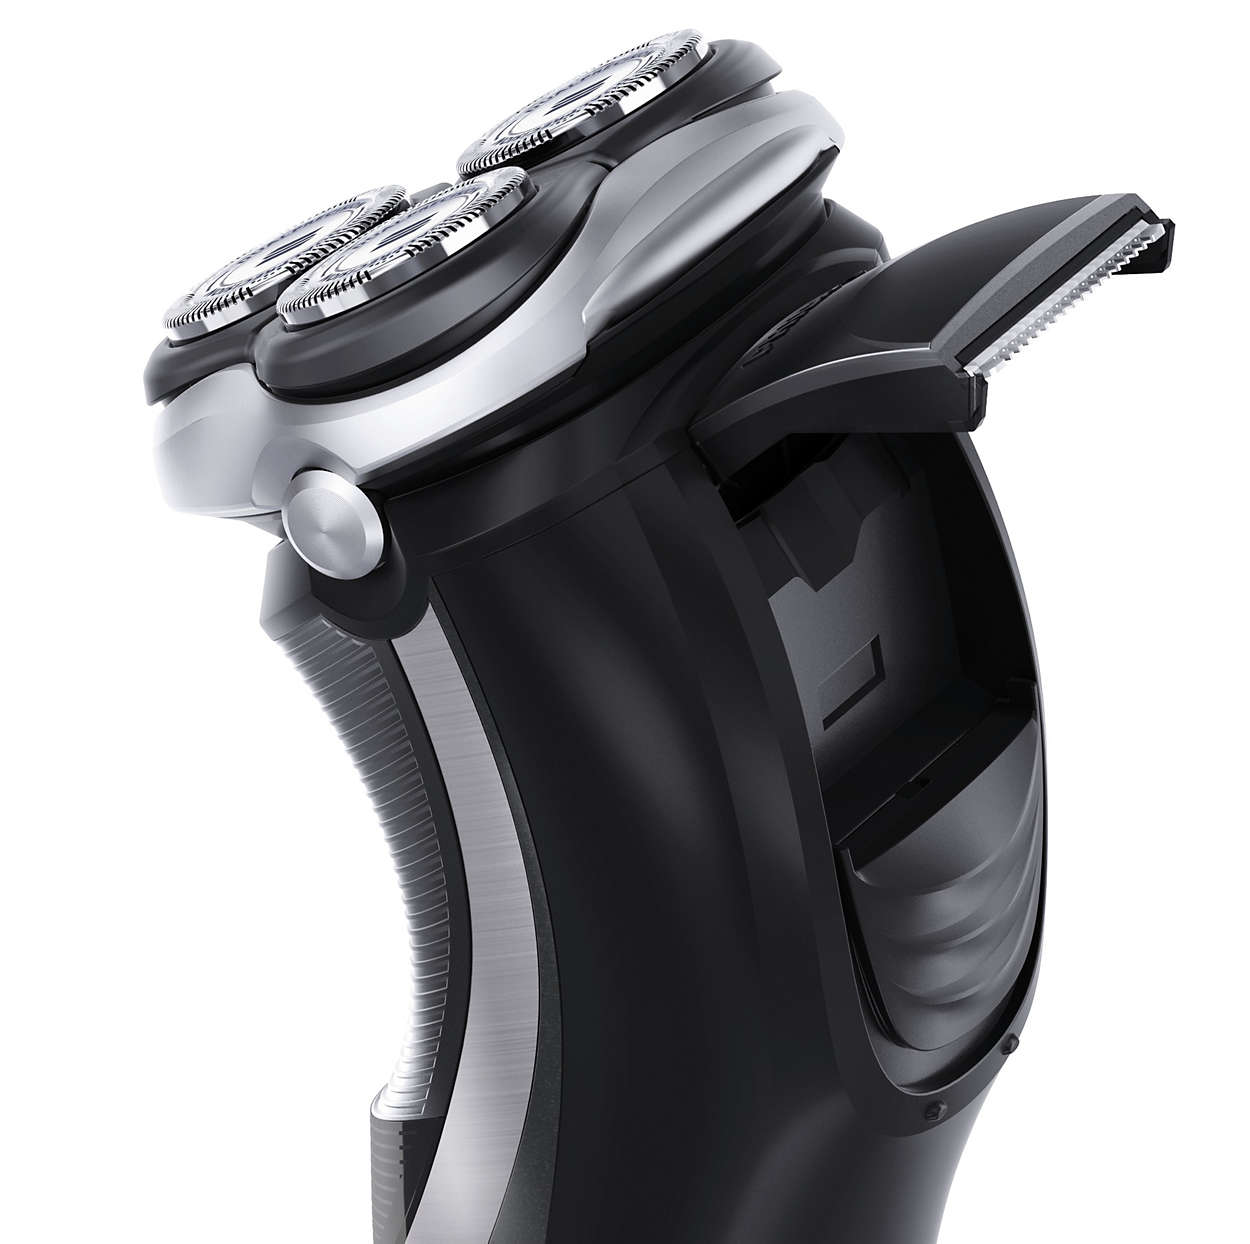 Shaver 3100 Dry Electric Series 3000 Pt724 41 Norelco Free Ongkir Philips Iron Hd 1173 40 Comfortable Close Shave